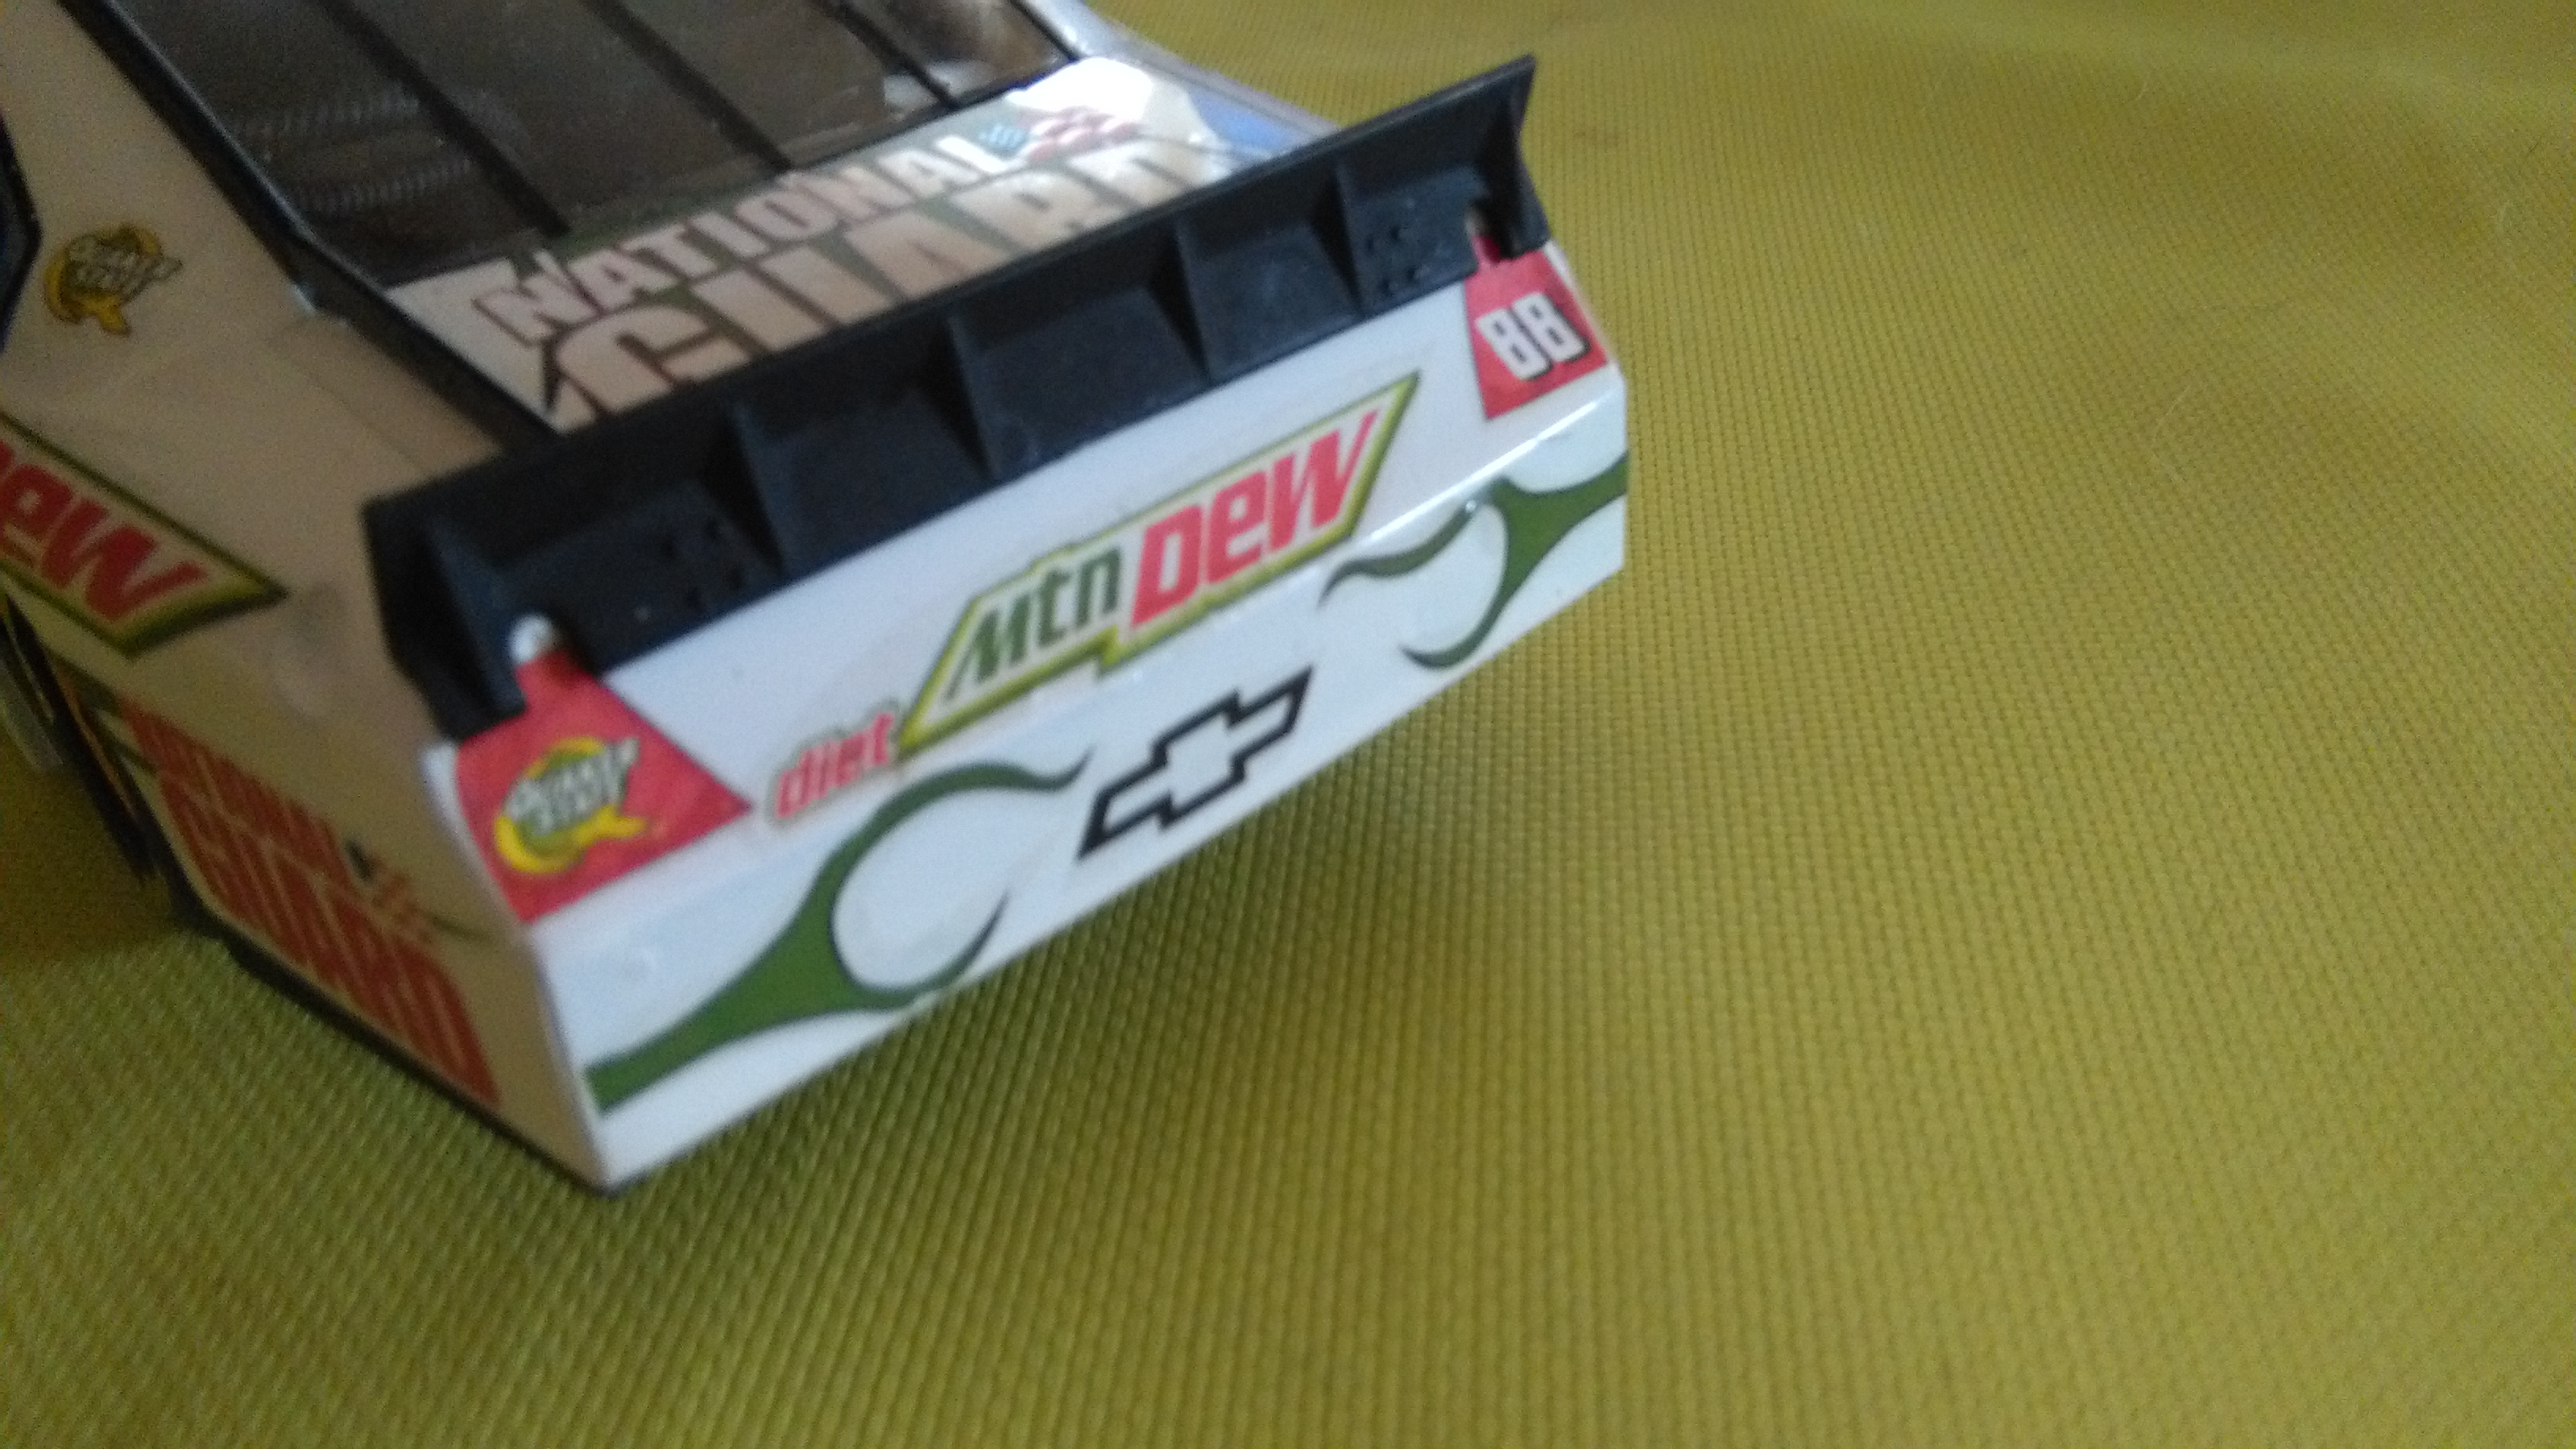 Chevy Impala 2010 #88 Earnhardt jr Mountain dew diet 829541IMG20160320150414